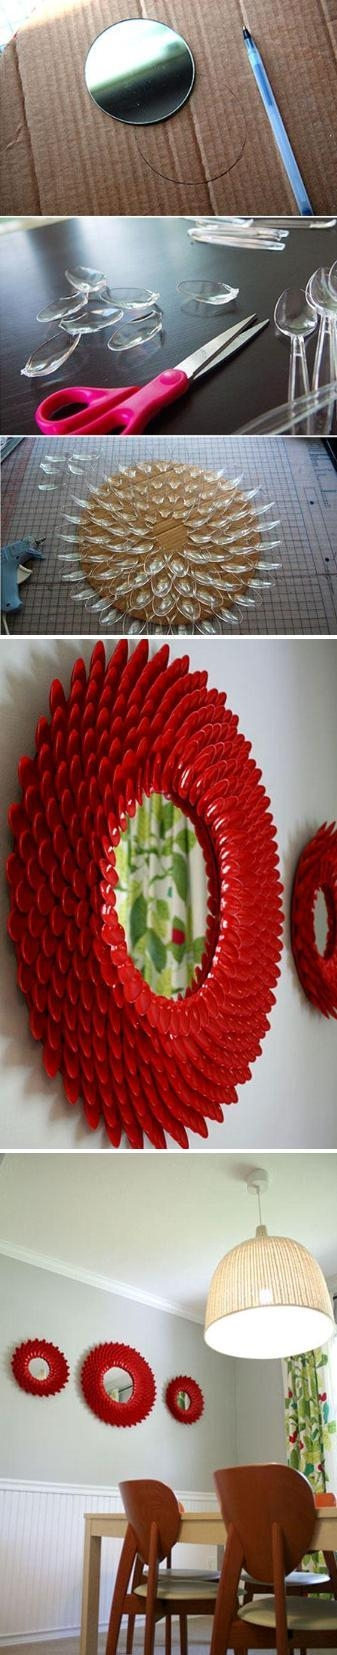 Make a Mirror from Plastic Spoon | We Heart It by mayraella